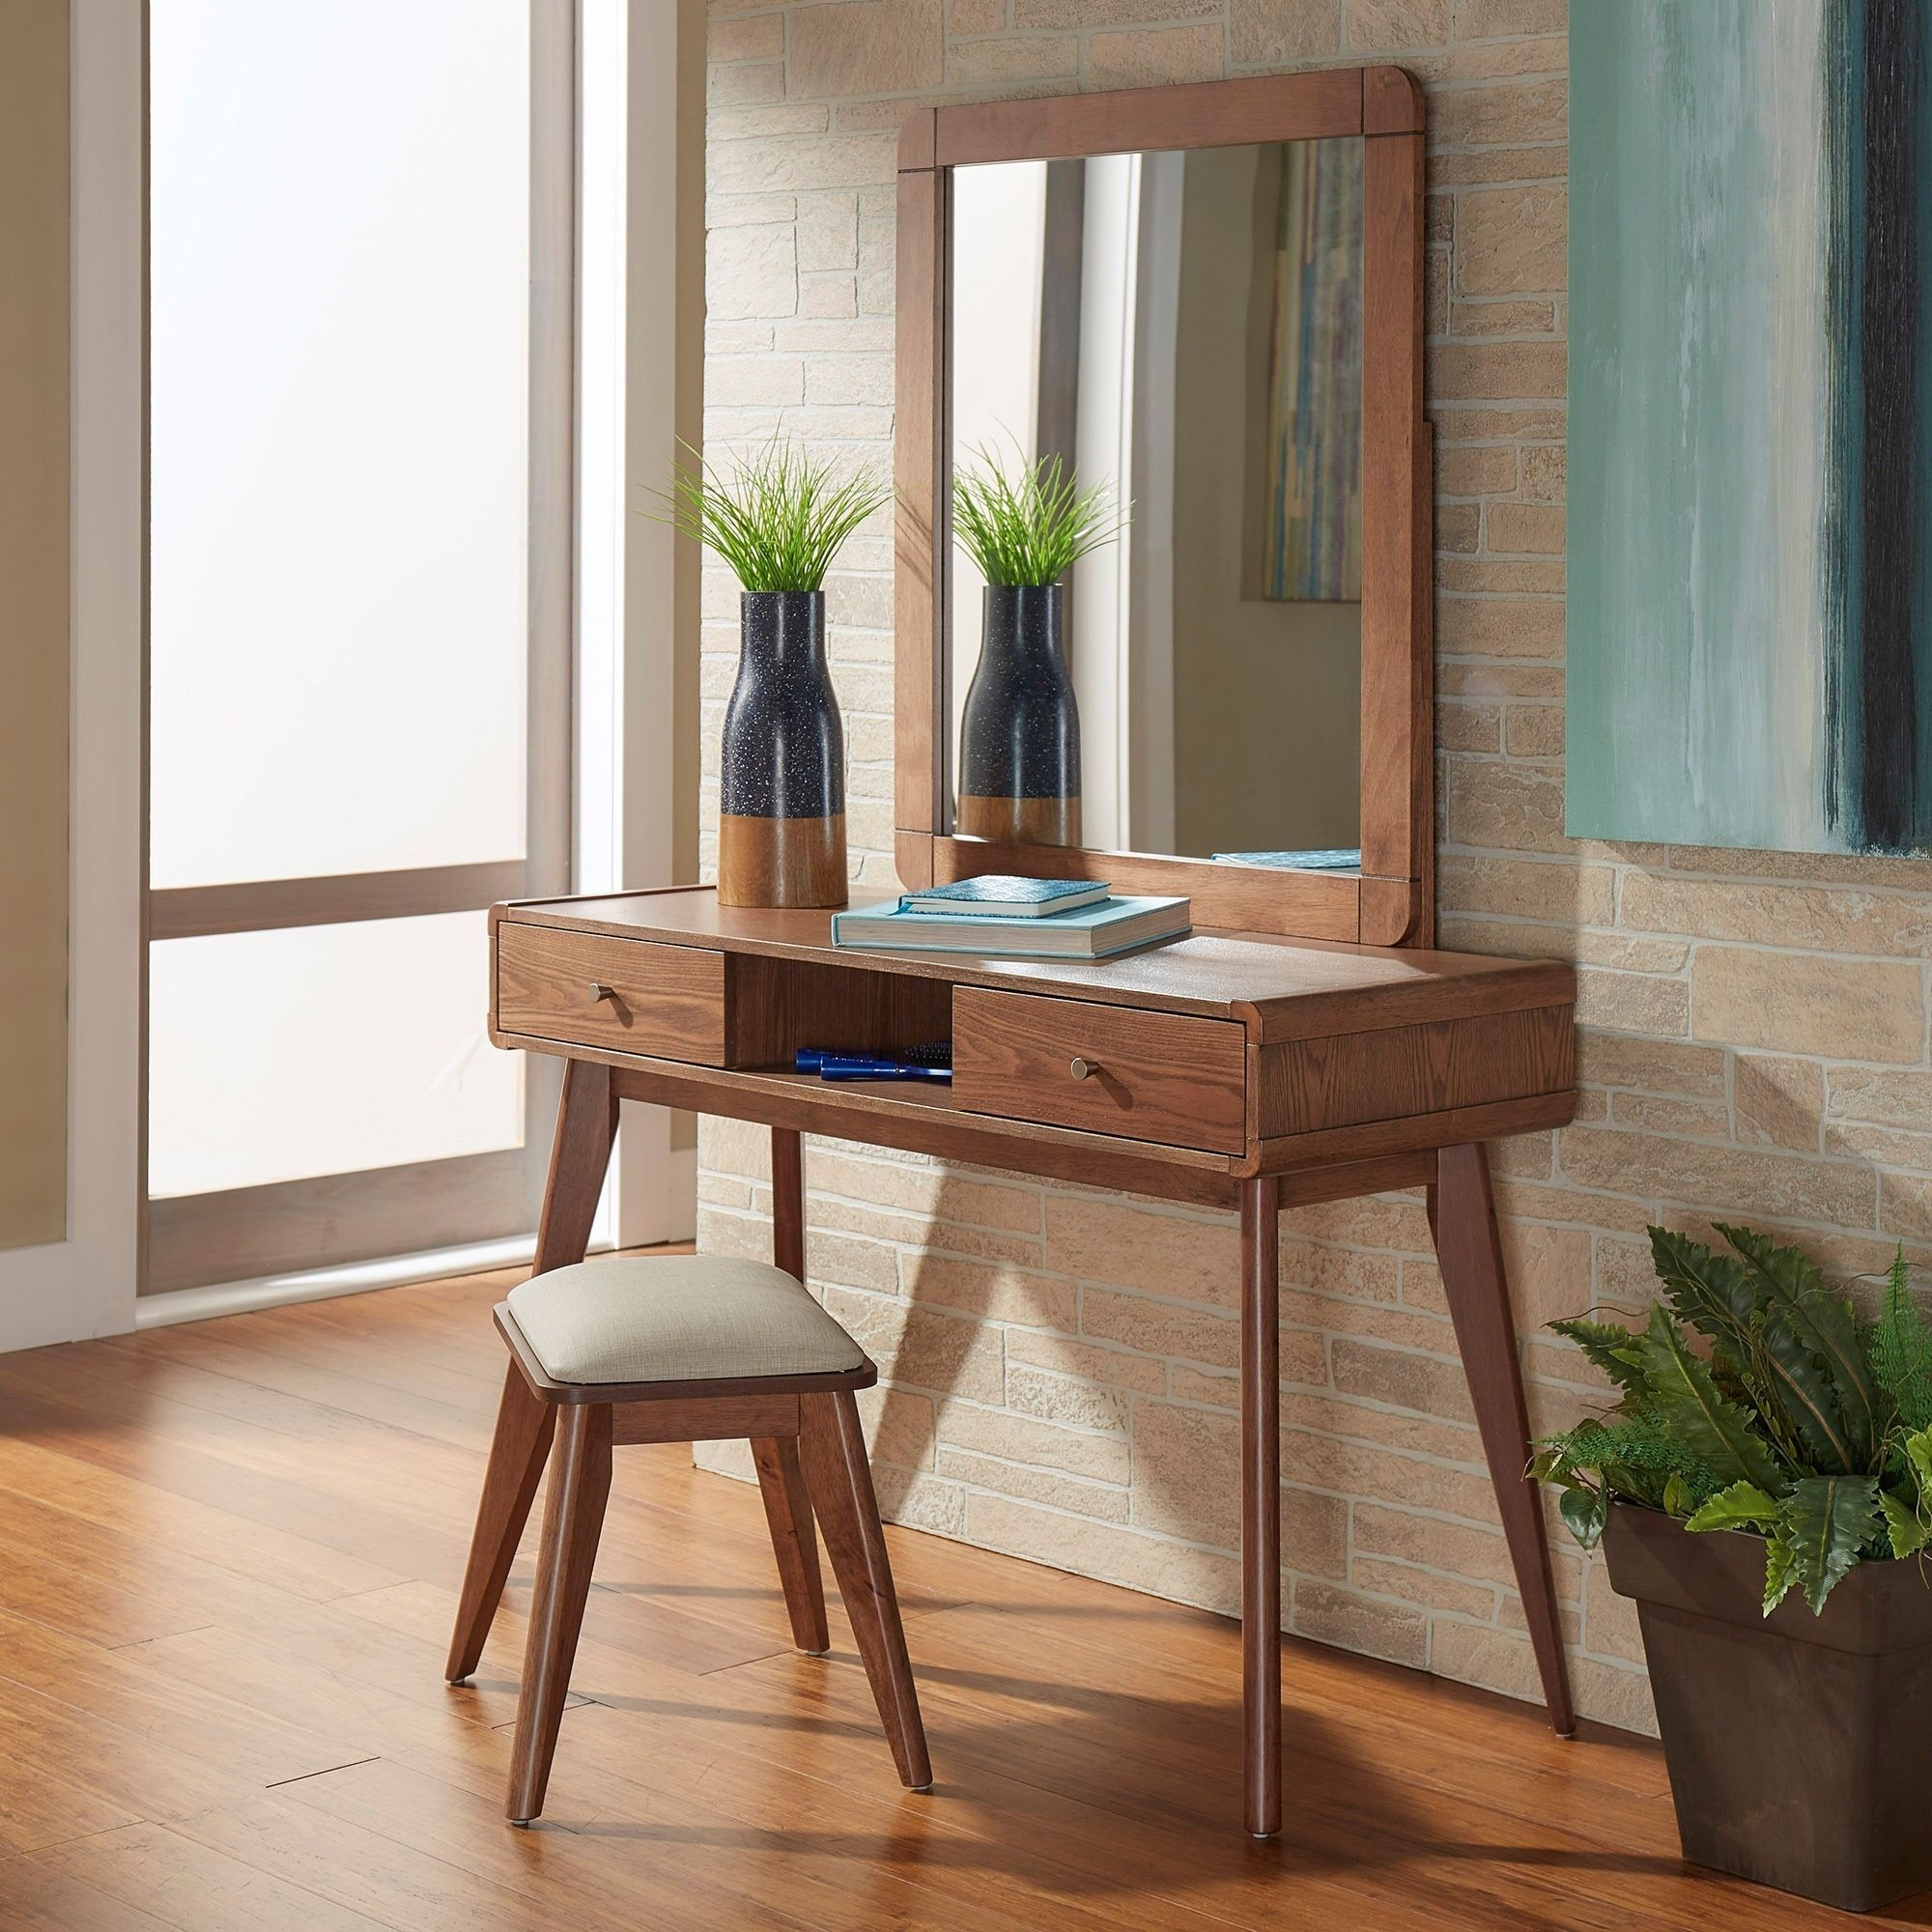 Penelope Danish Modern Vanity Console Table iNSPIRE Q Modern (Chestnut  Table + Mirror + Stool